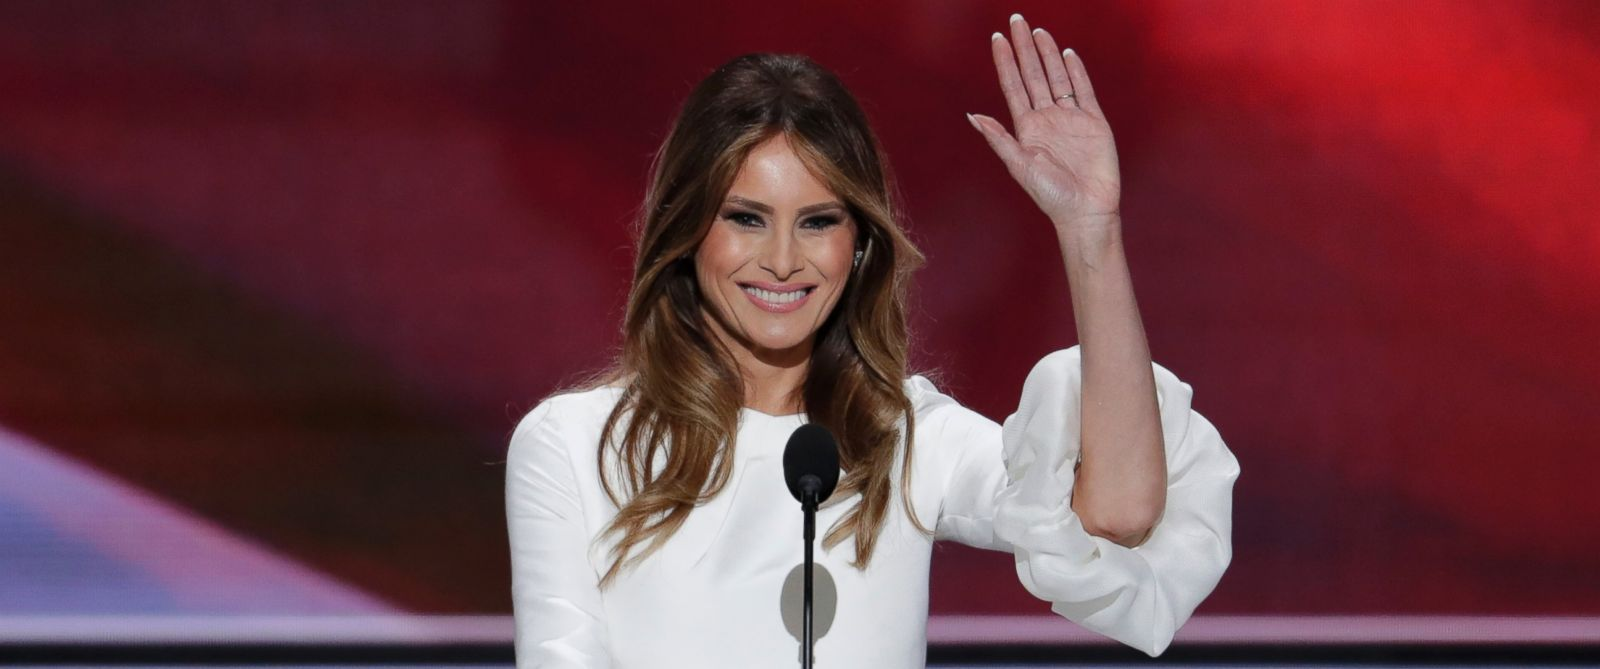 PHOTO: Melania Trump, wife of Republican Presidential Candidate Donald Trump waves as she speaks during the opening day of the Republican National Convention in Cleveland, Monday, July 18, 2016.